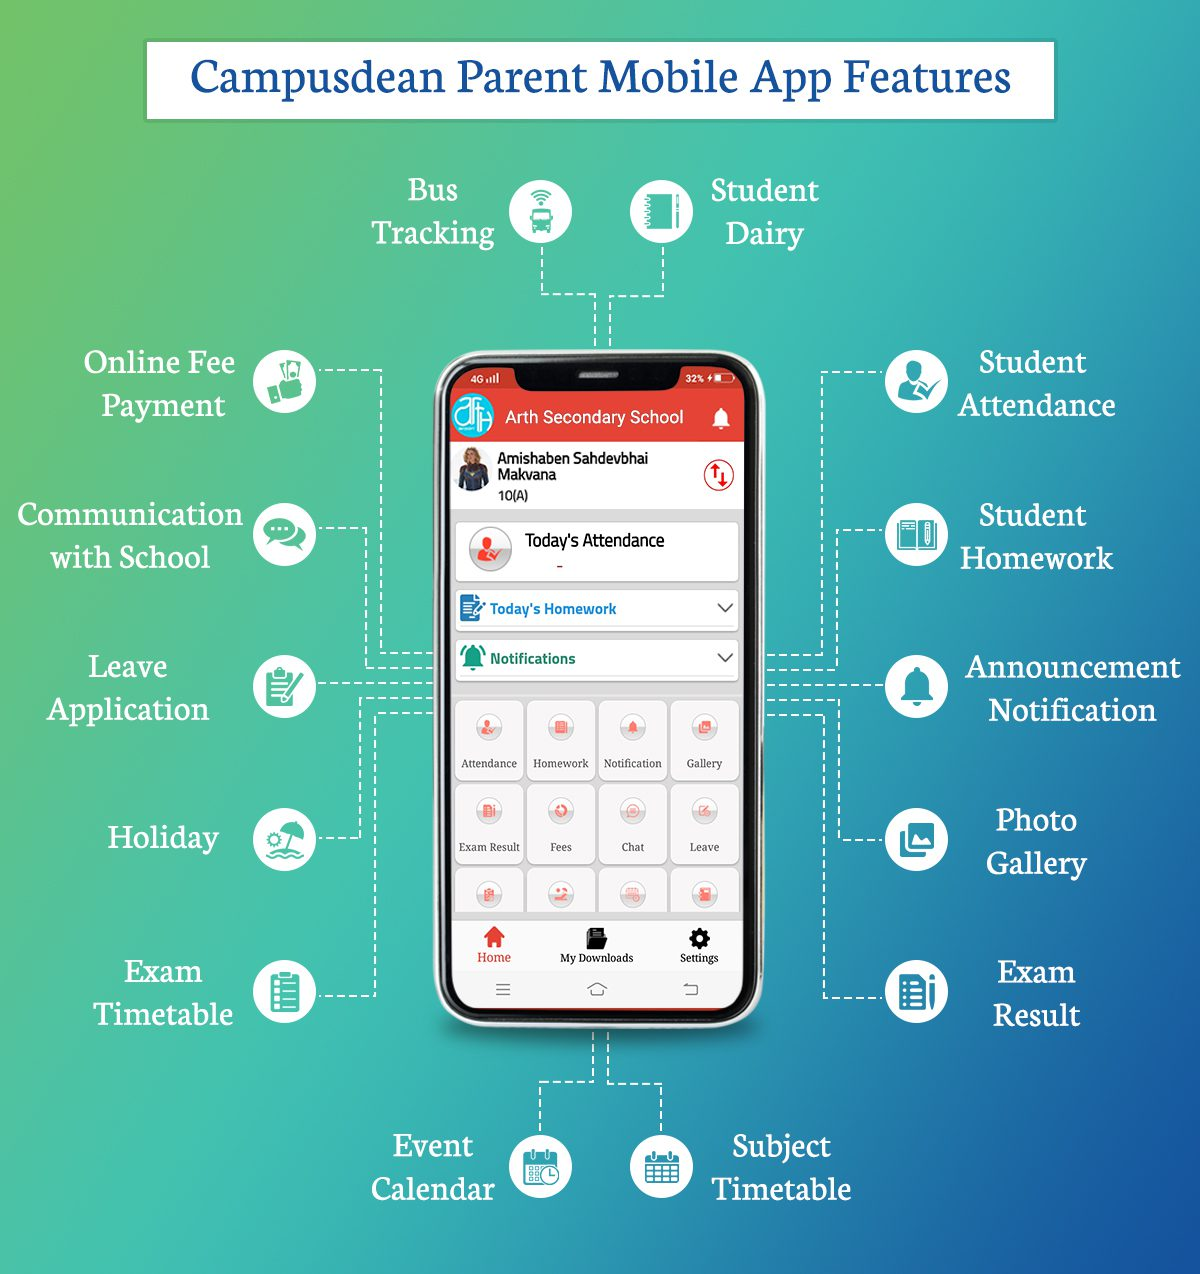 Campusdean Parent Mobile App